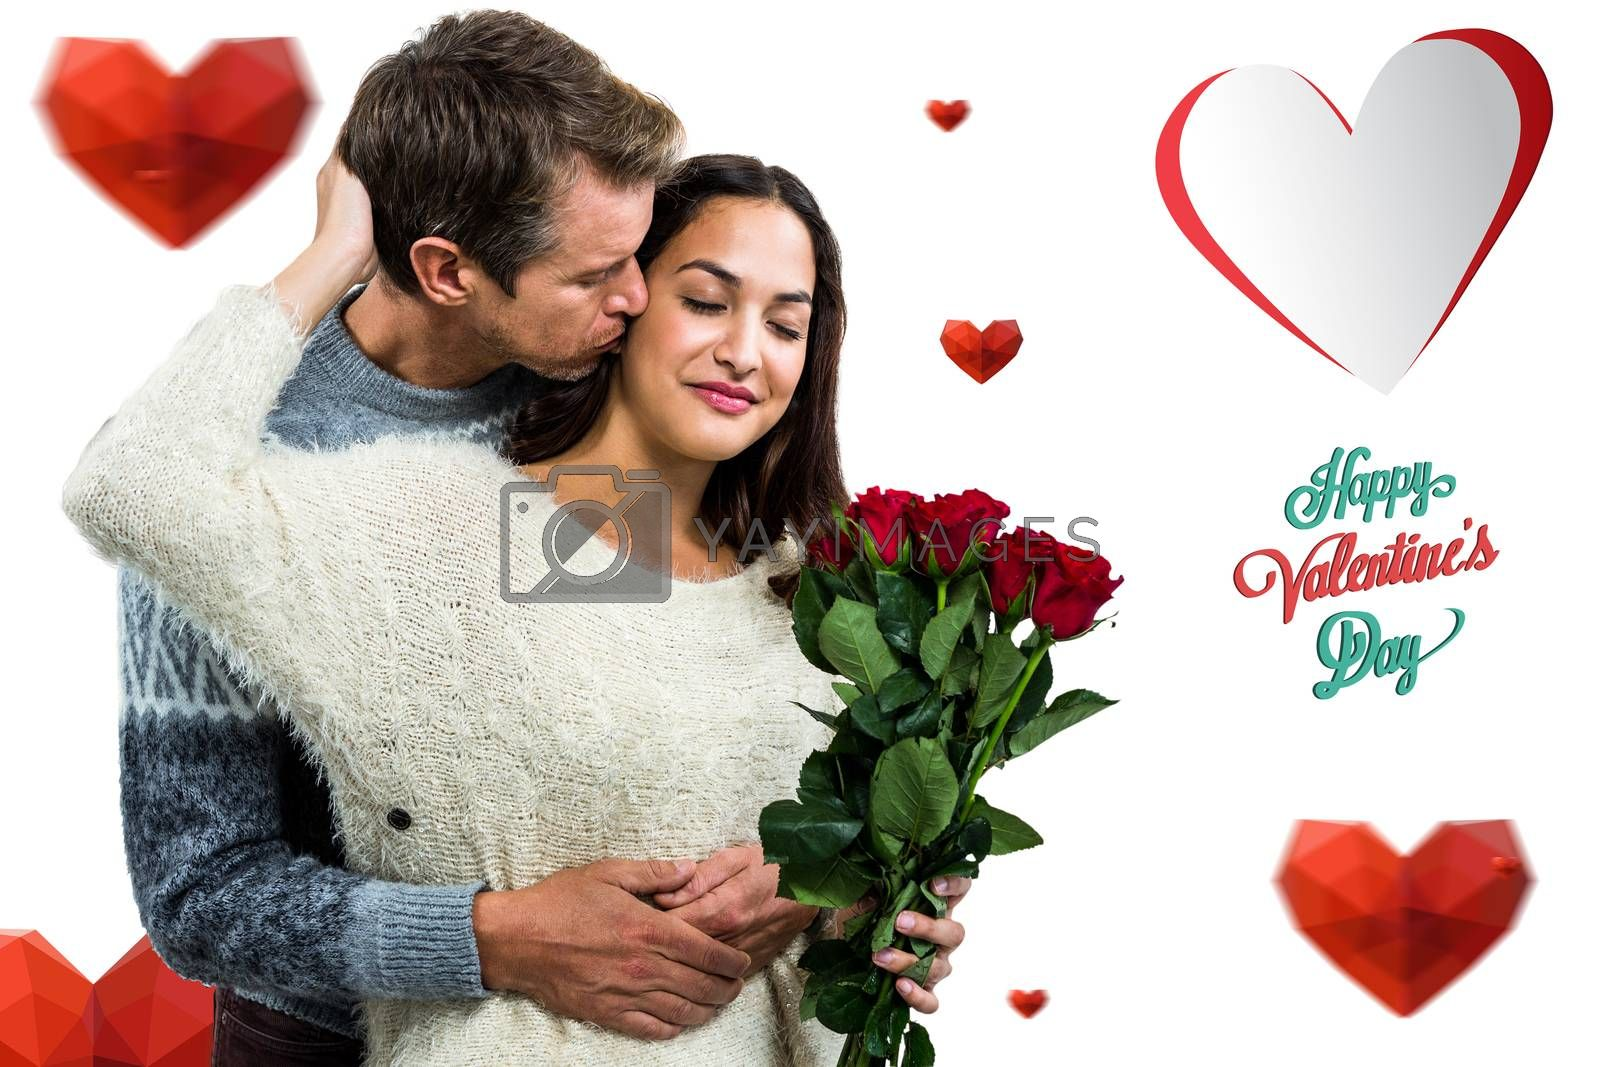 Man embracing and kissing girlfriend against happy valentines day